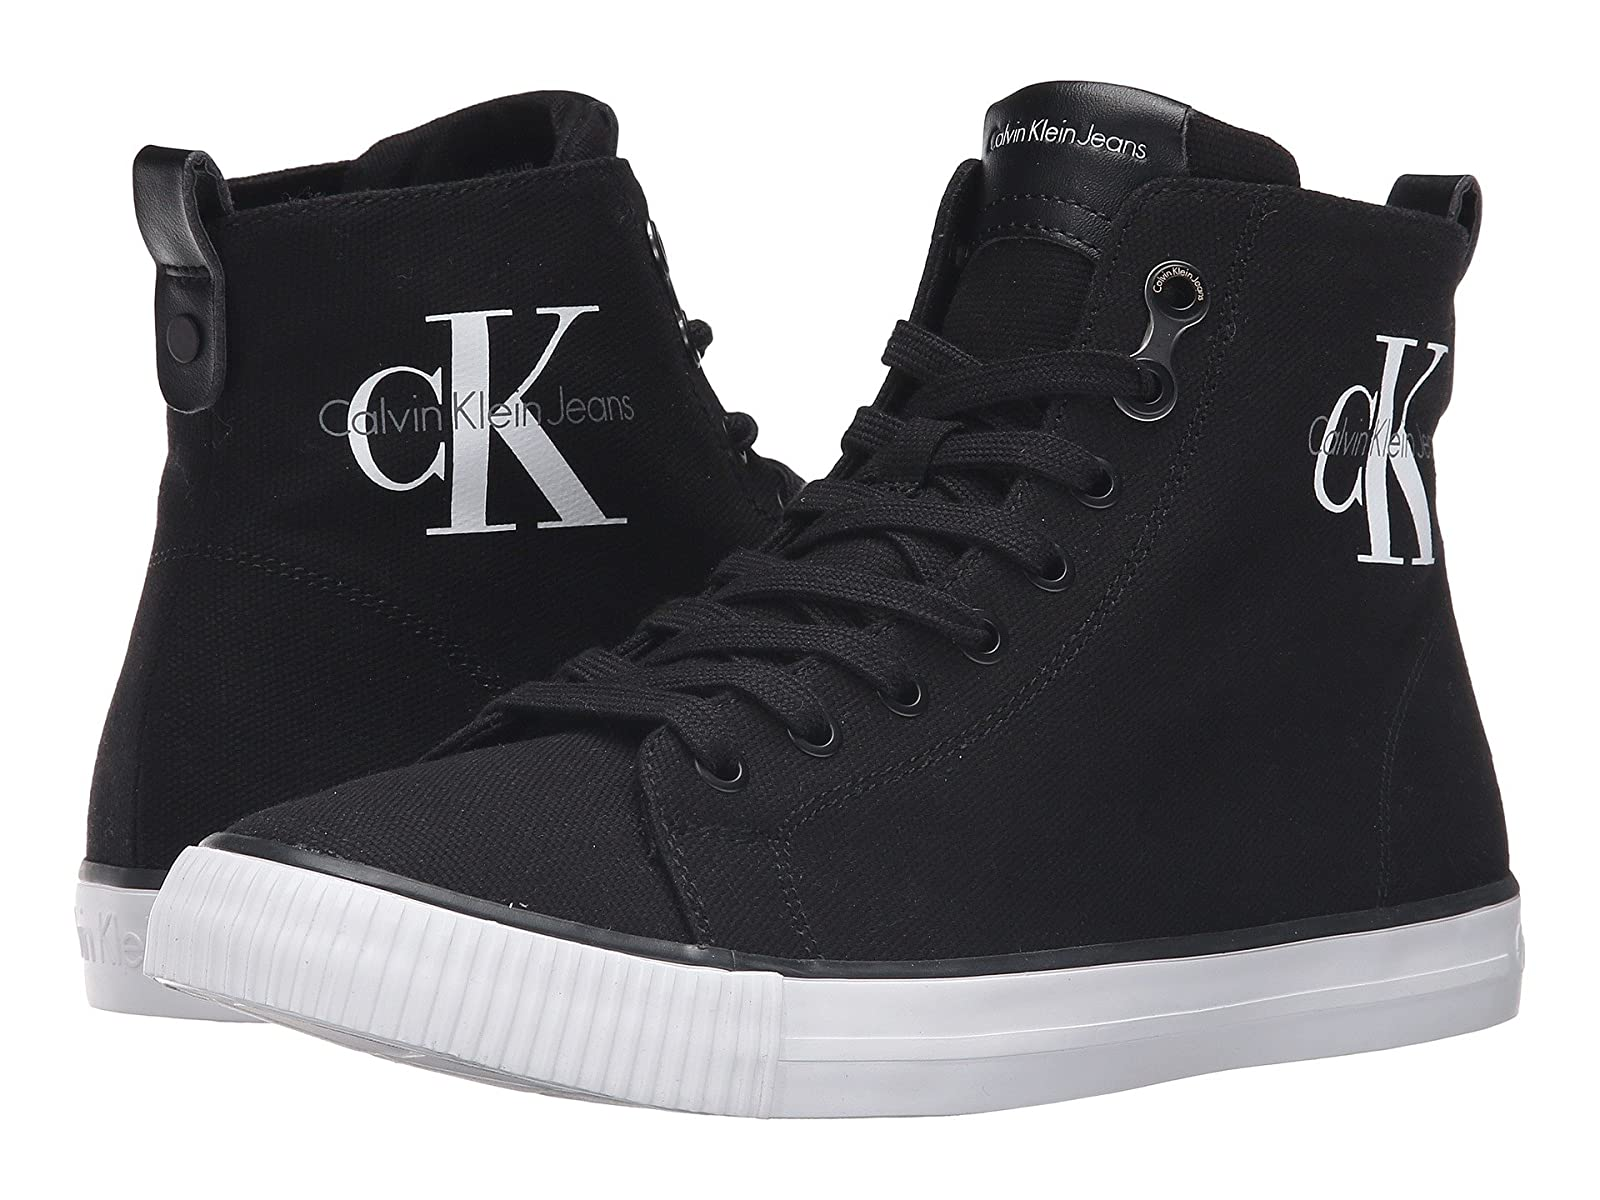 Calvin Klein Jeans ArthurCheap and distinctive eye-catching shoes